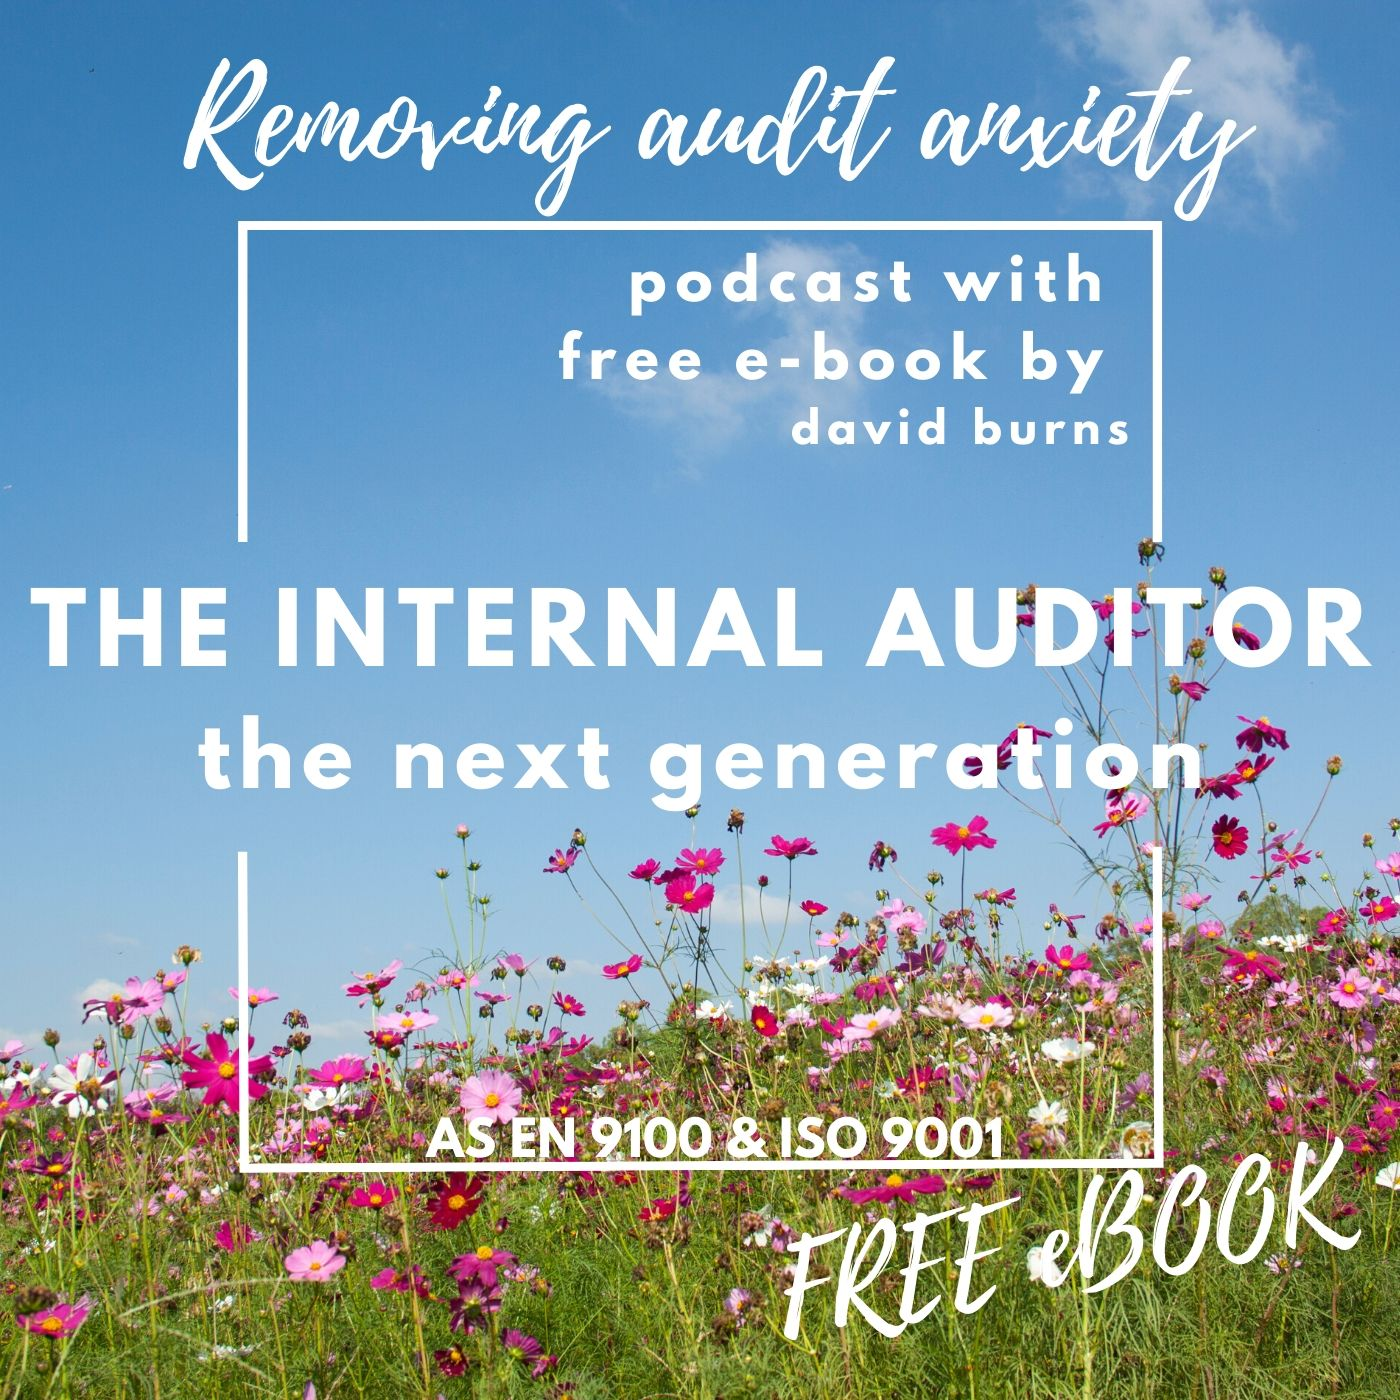 New THE INTERNAL AUDITOR Flowers podcast